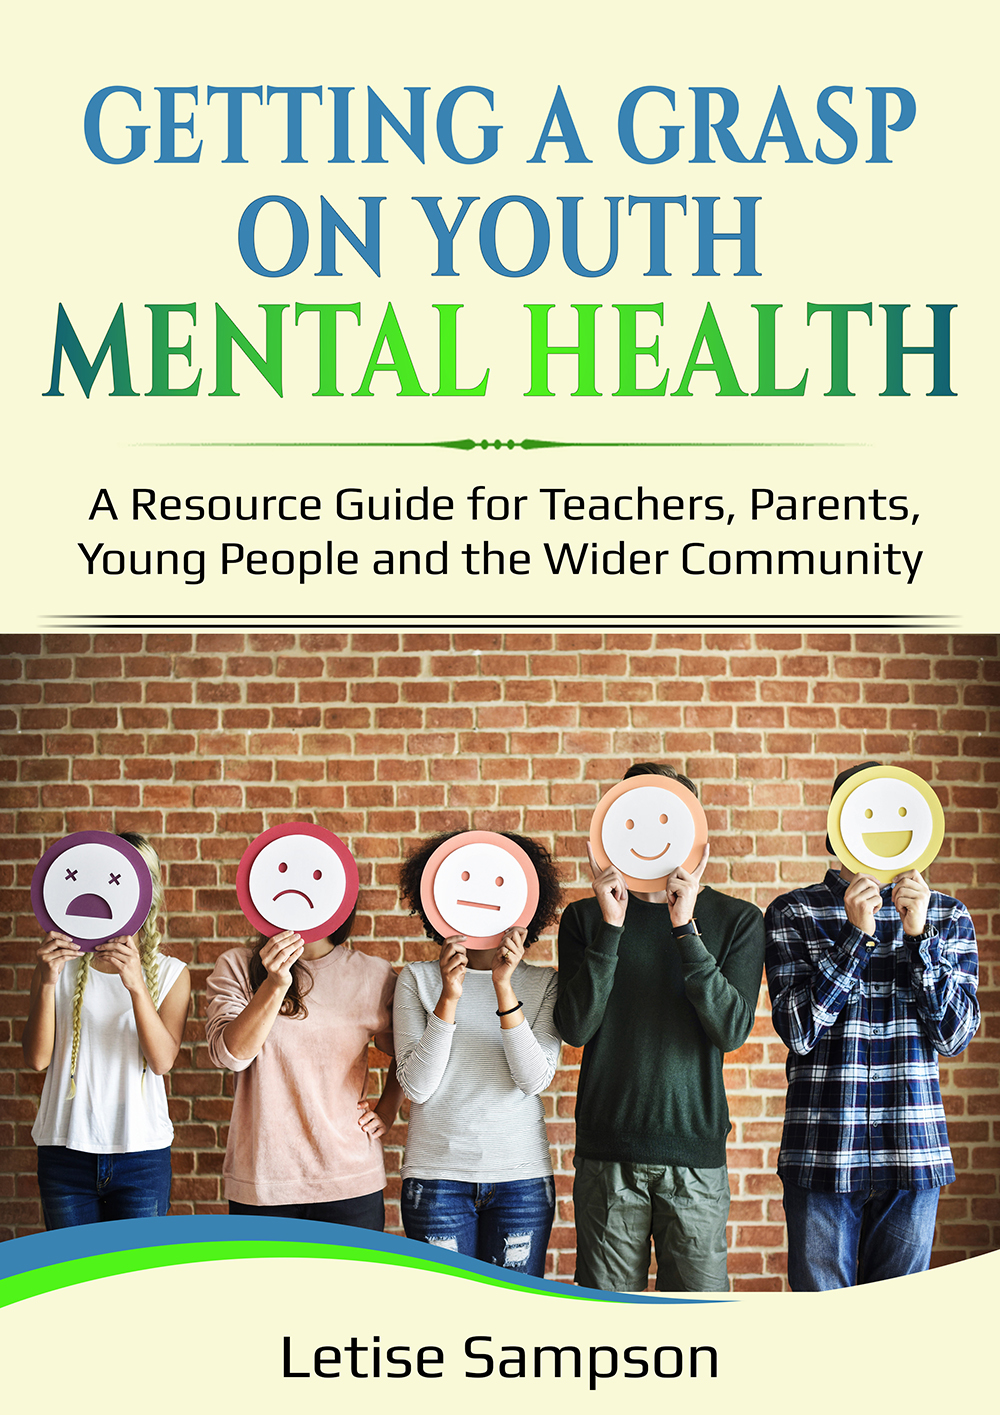 Youth Mental Health training book